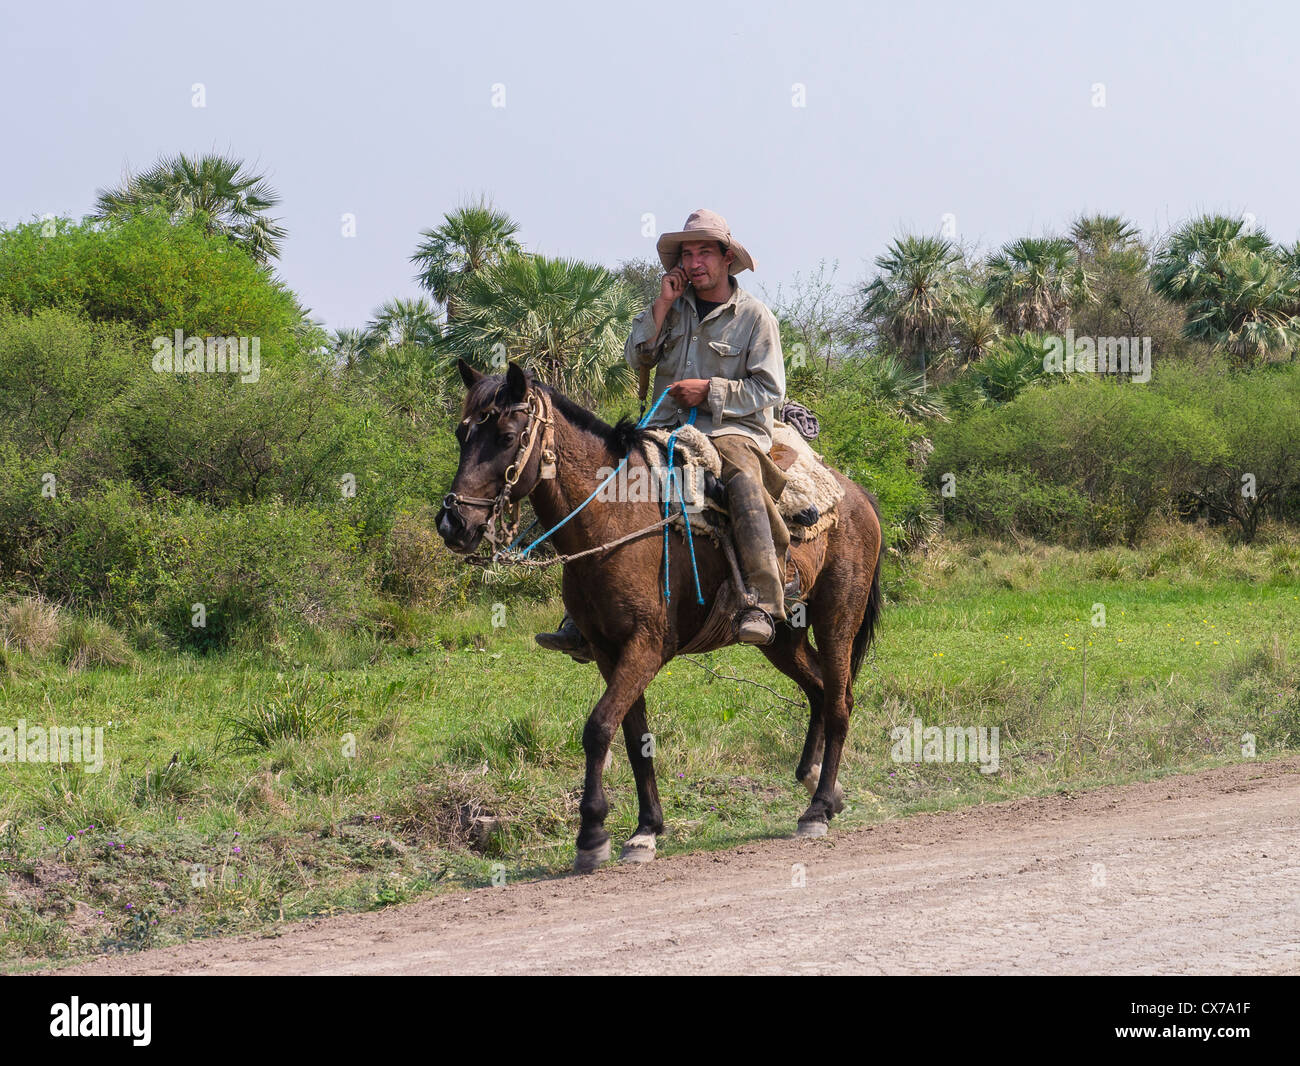 Male horseback rider in the Chaco region of northern Paraguay. - Stock Image